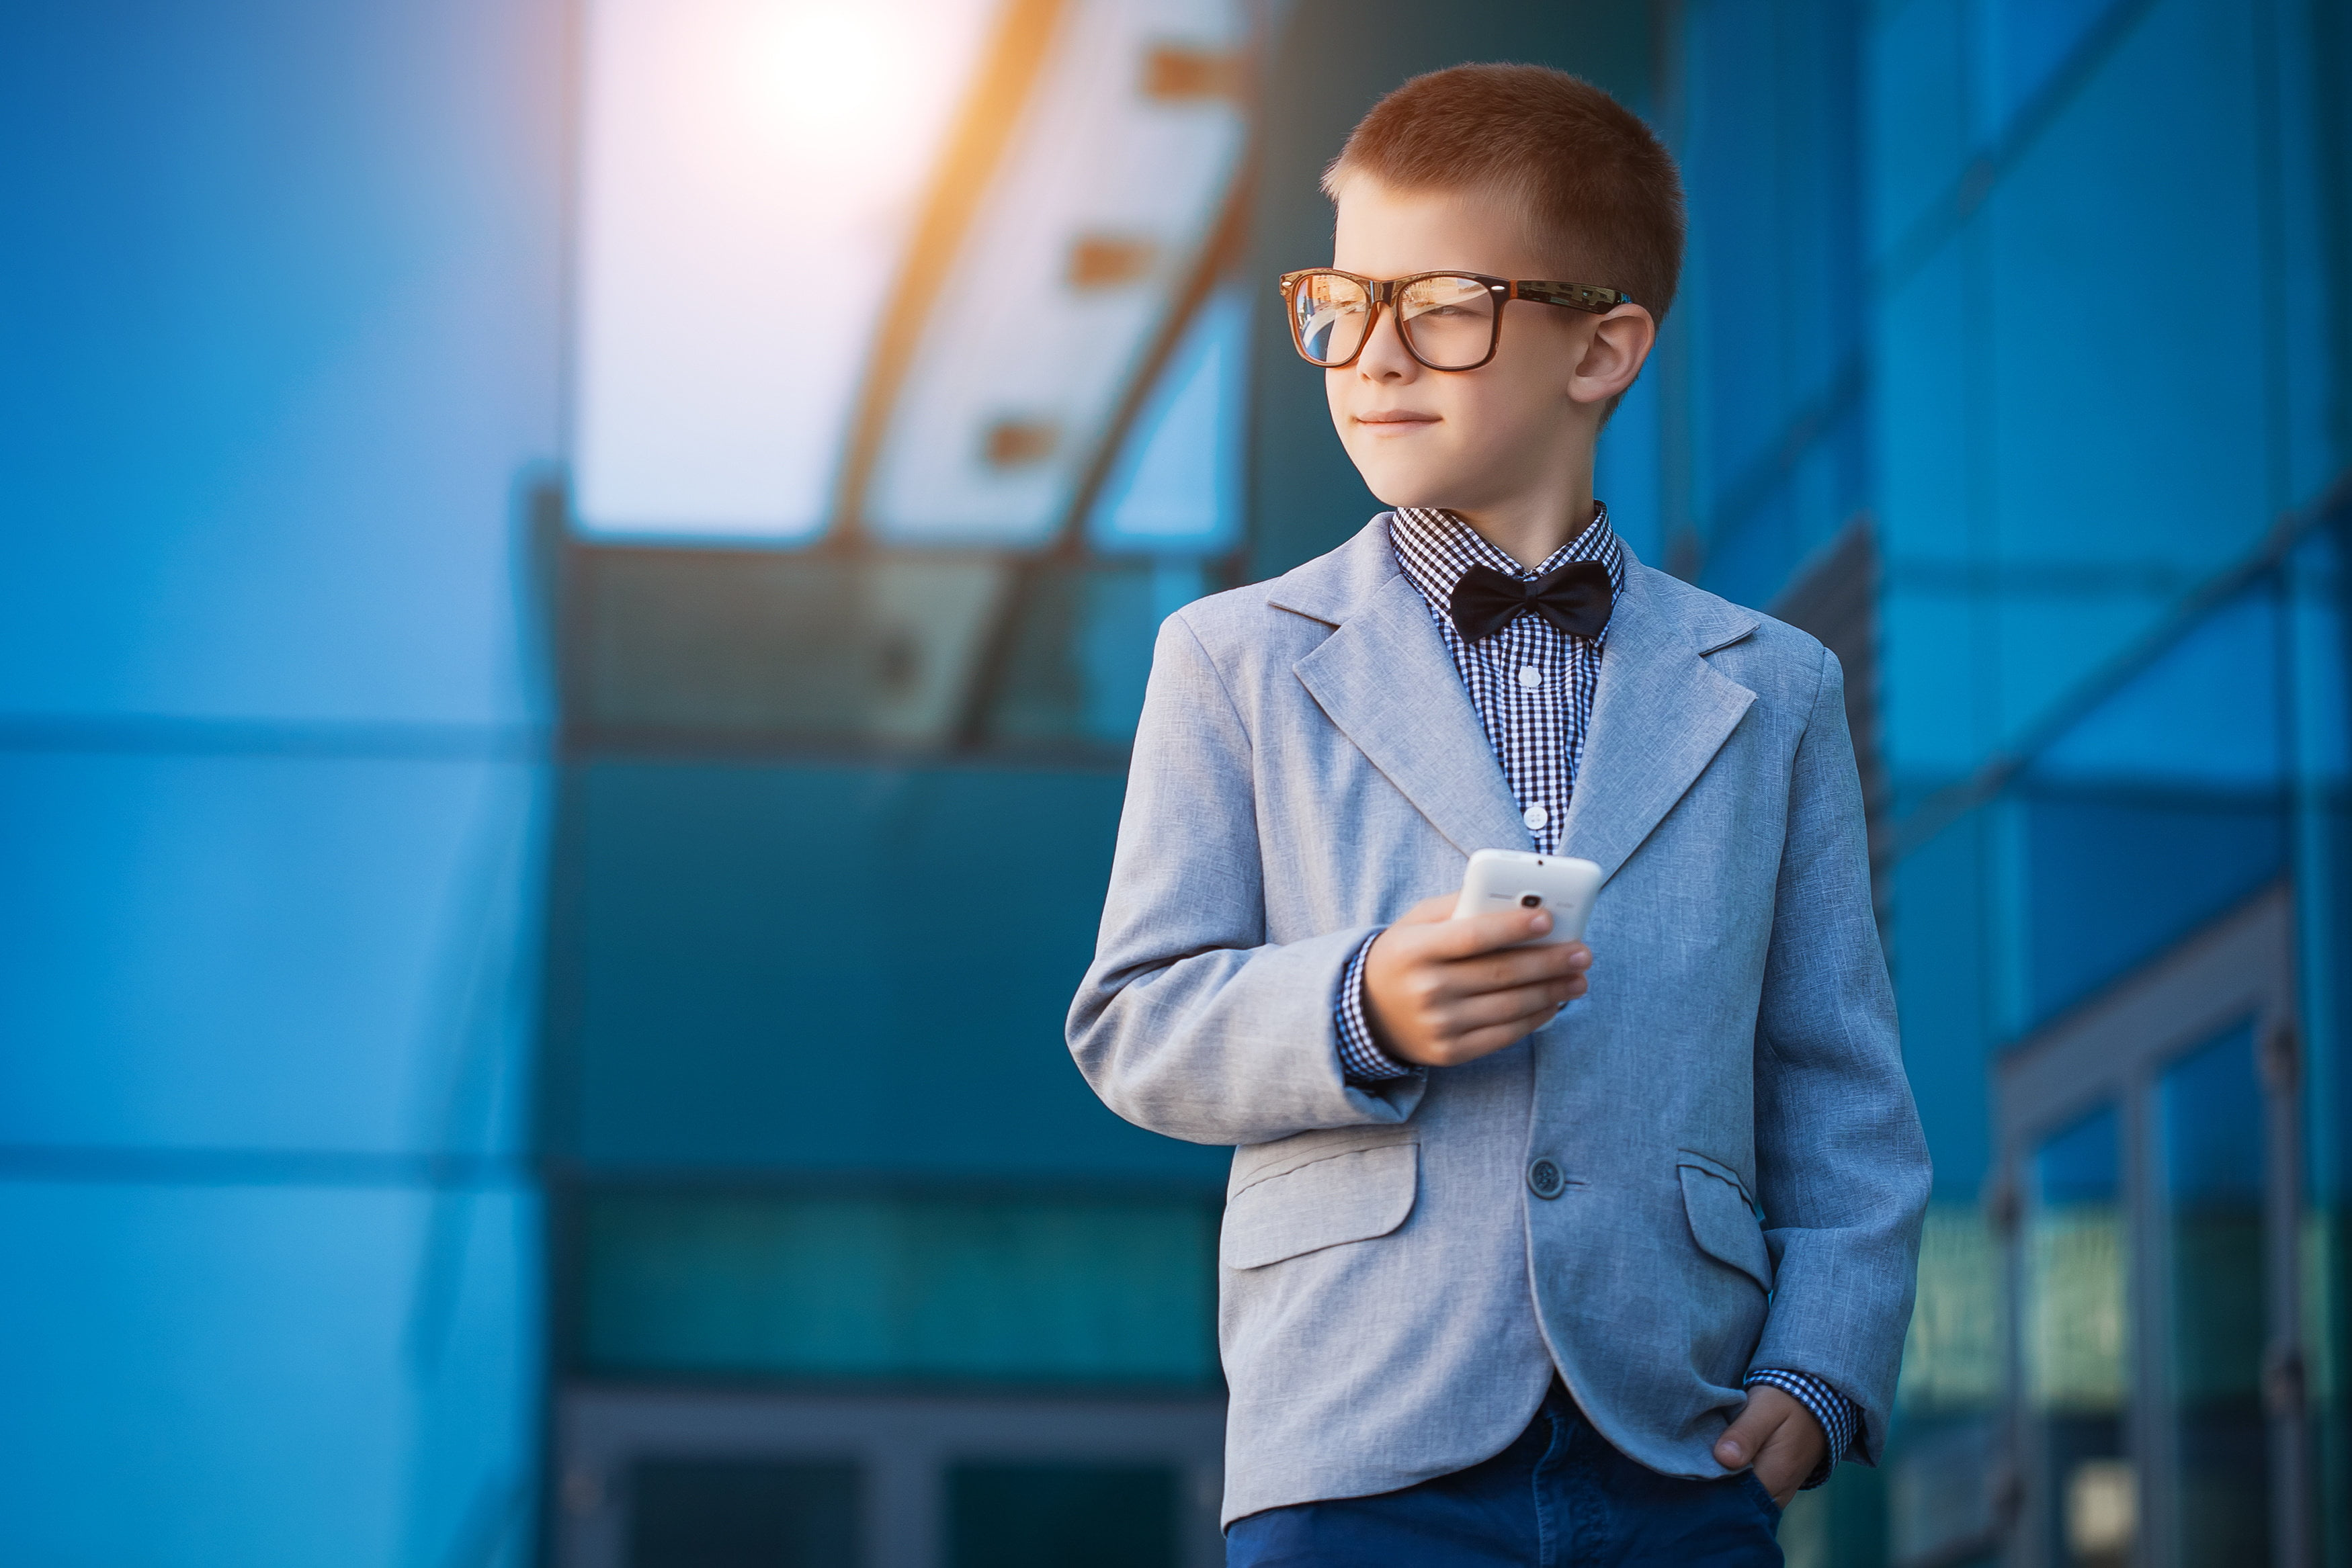 Portrait of a kid businessman next to tall buildings